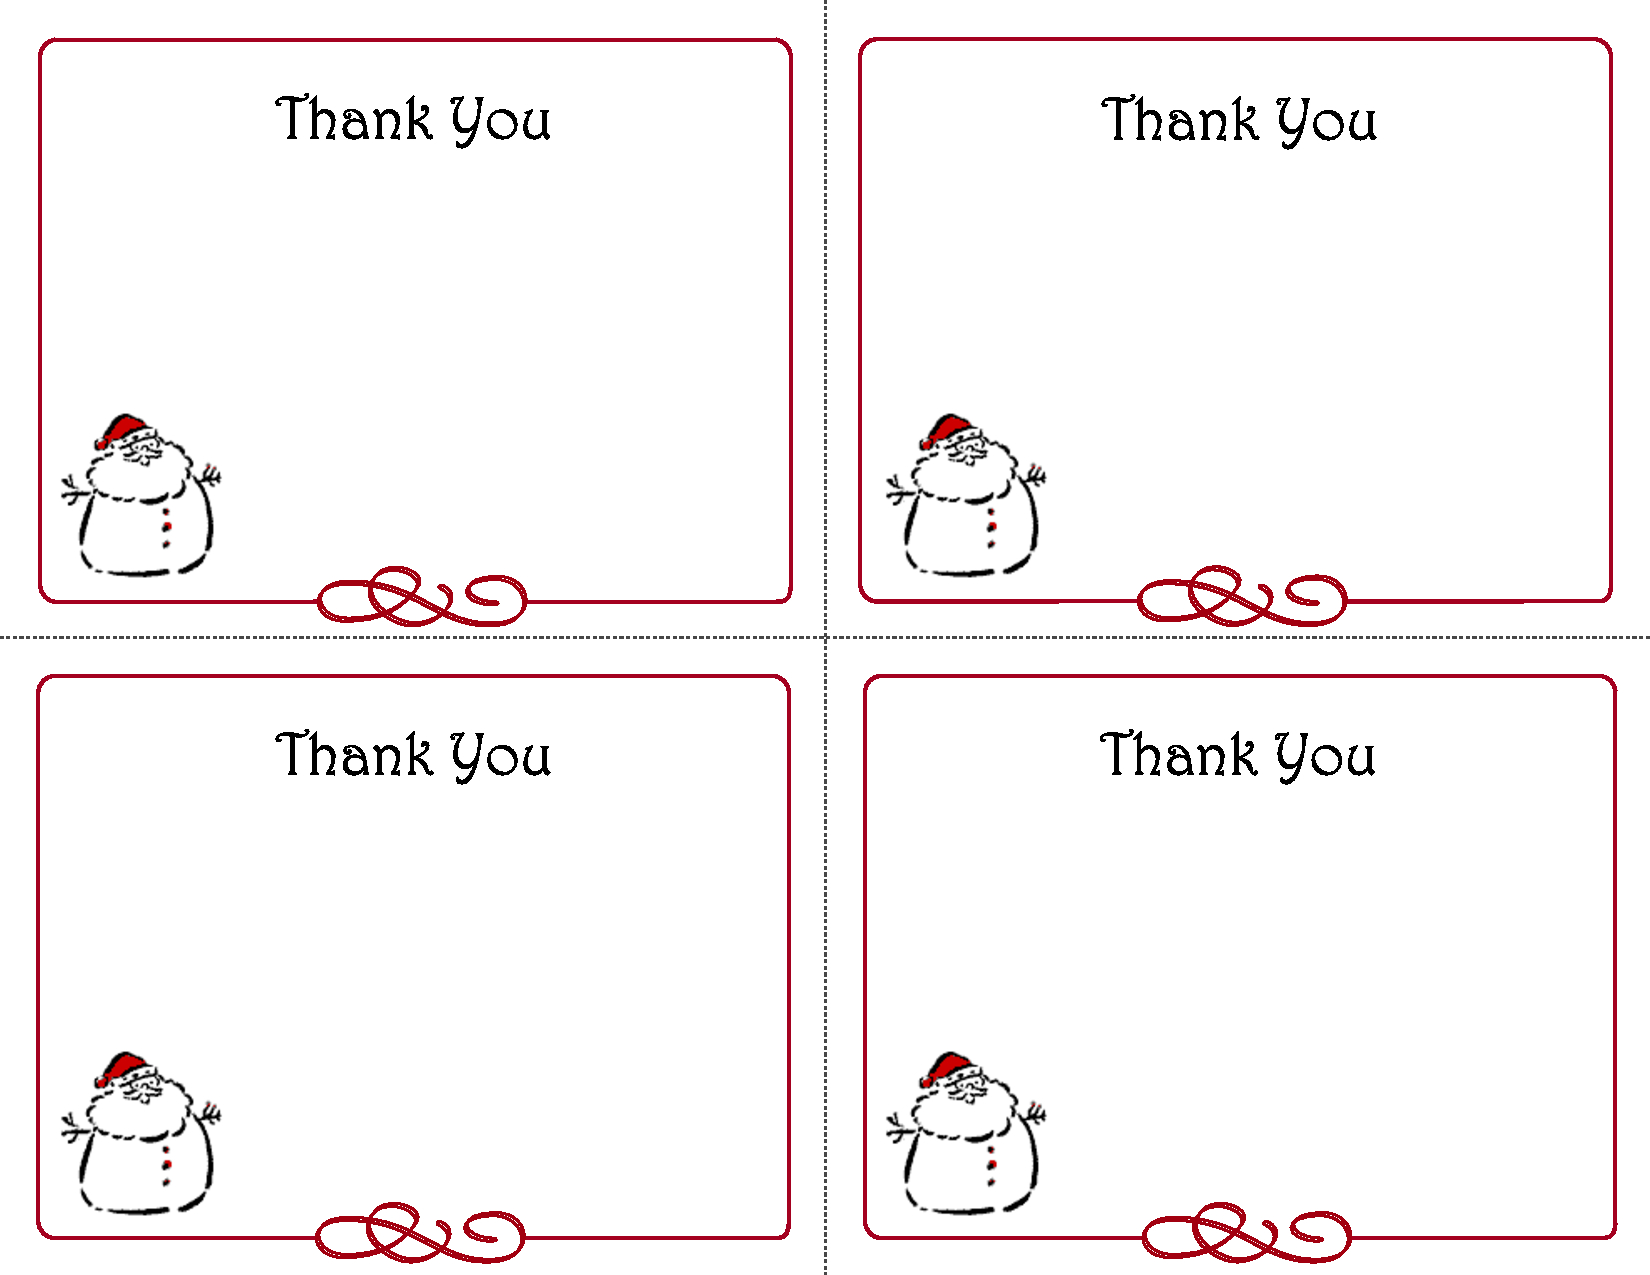 Free Christmas Thank You Notes Printable – Festival Collections - Free Christmas Thank You Notes Printable